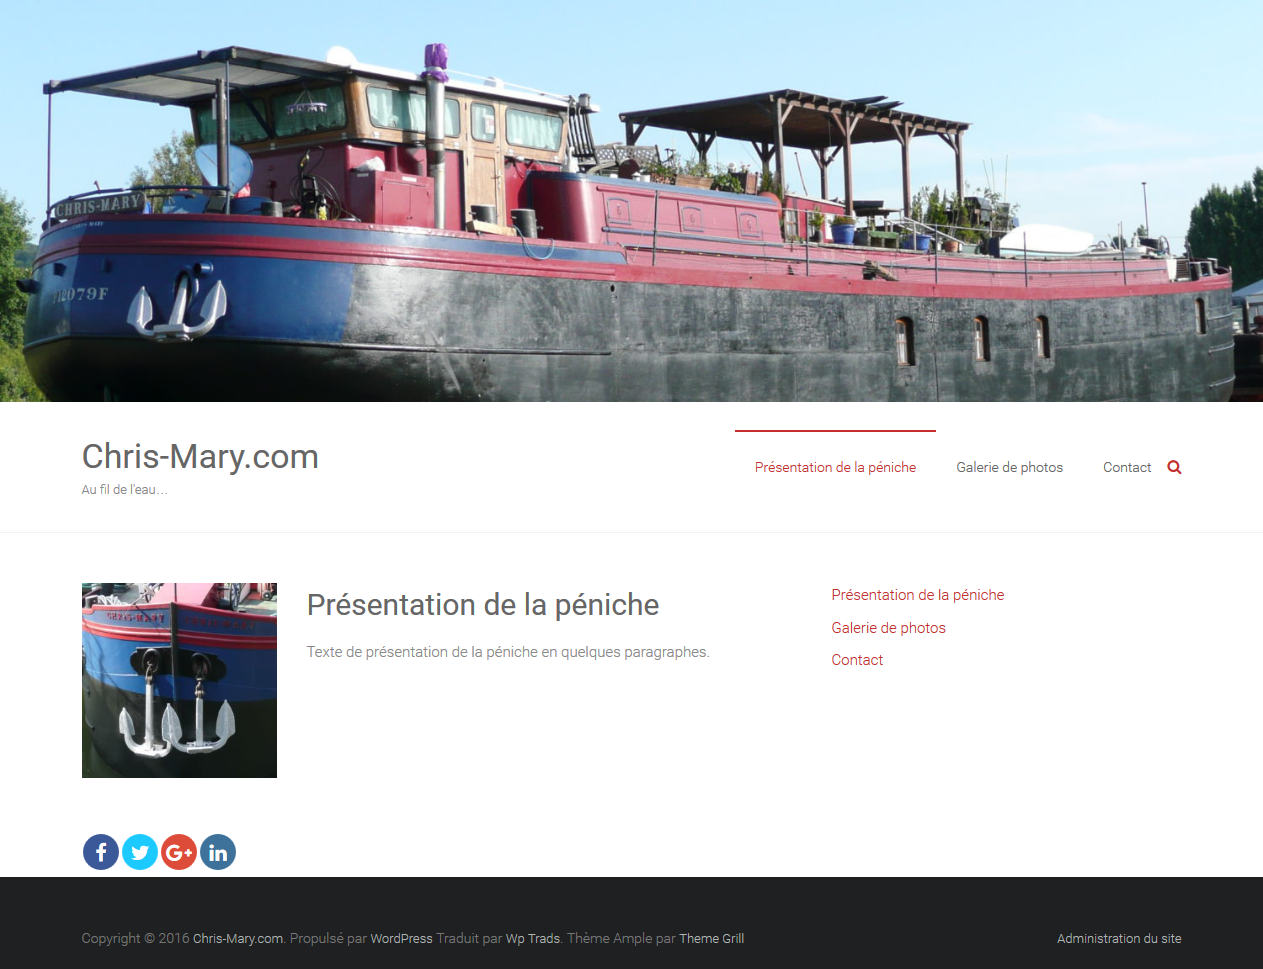 Chris-Mary.com